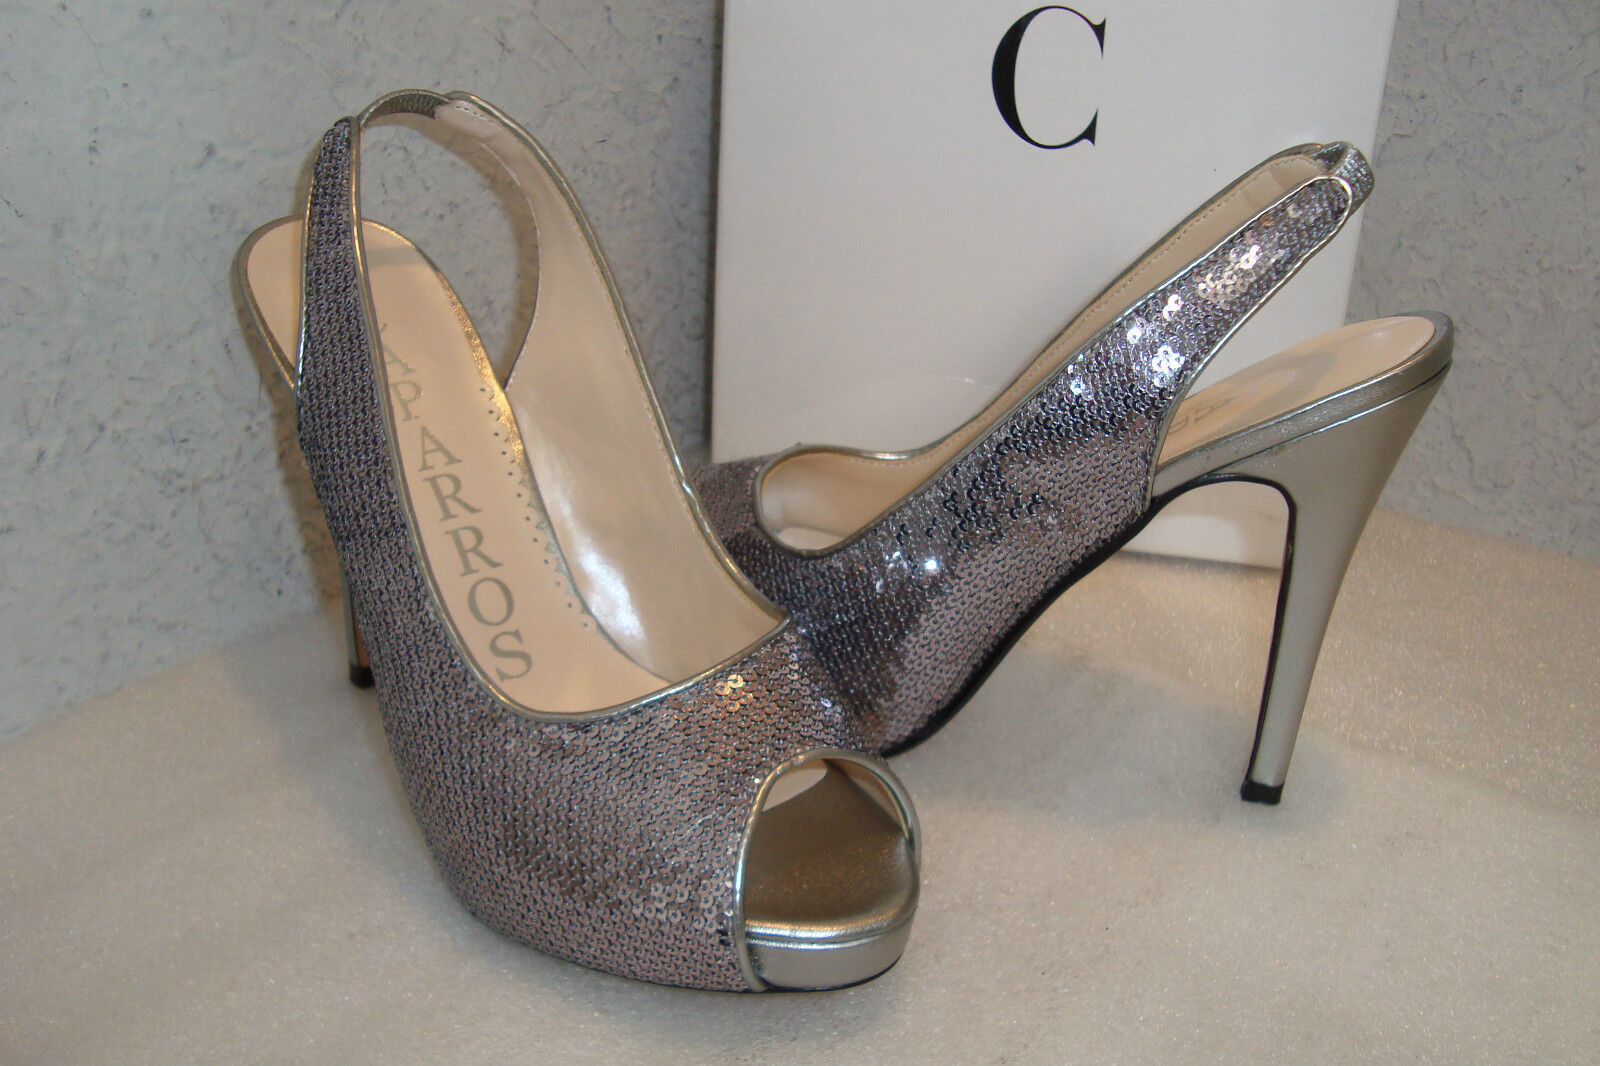 Caparros Womens NWB Channing Sequin Silver Sling Back Heels Shoes 6.5 MED NEW